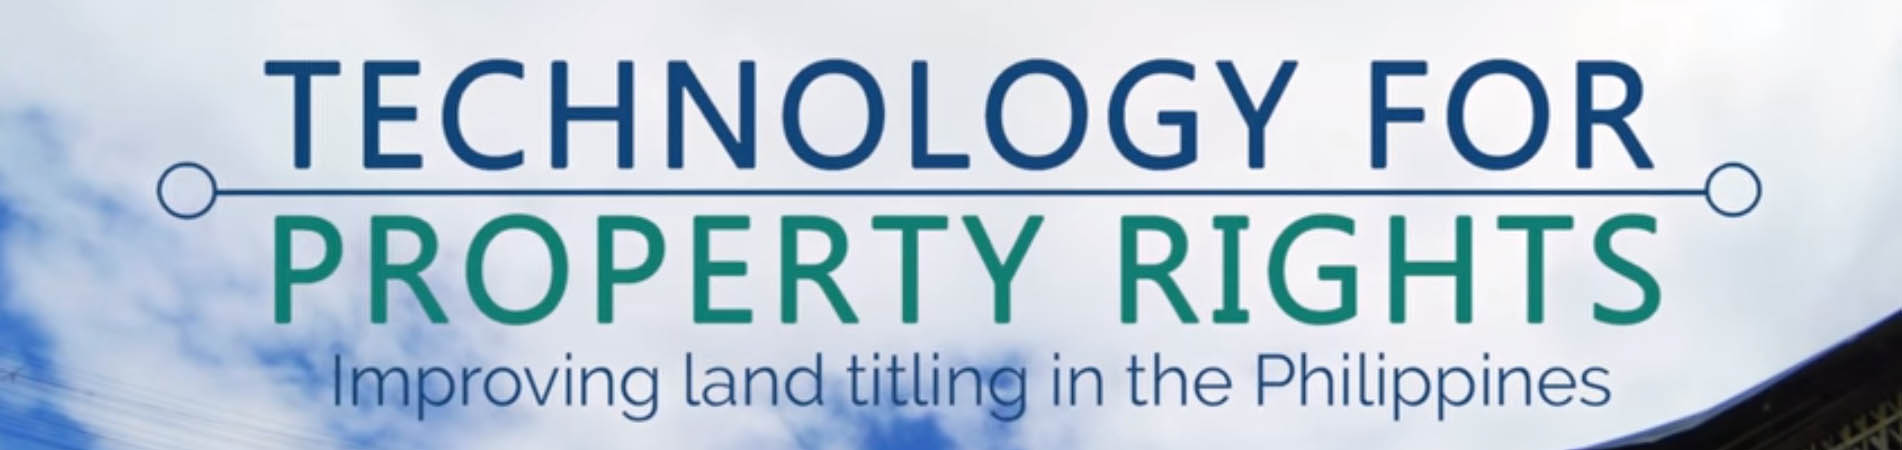 Technology for Property Rights